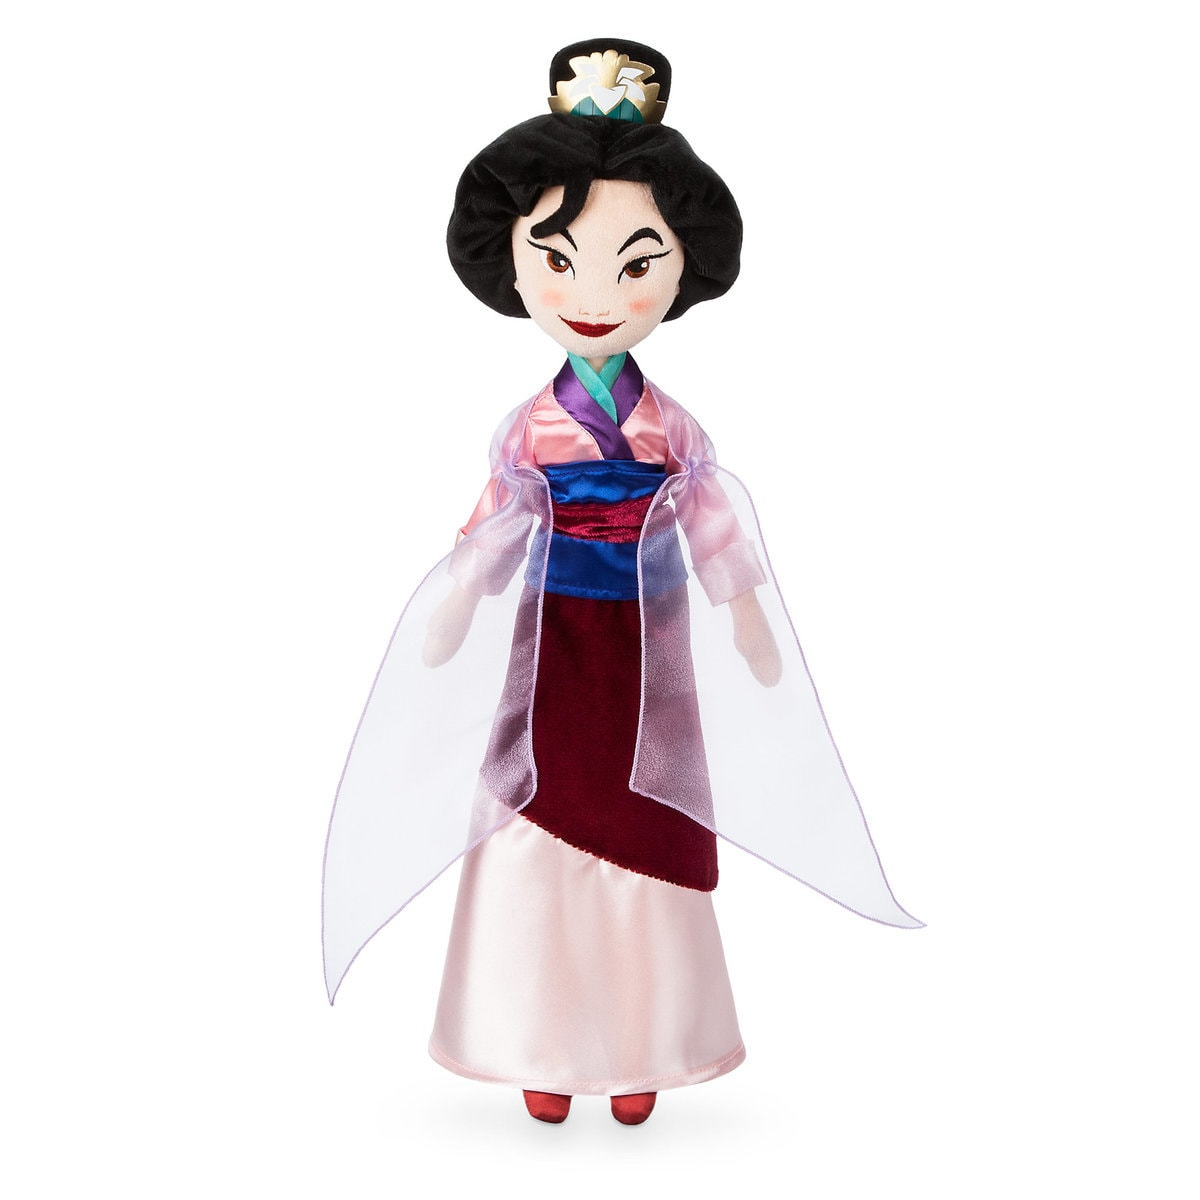 Mulan plush doll for toddlers | Top 25 Disney Gift Ideas for Toddlers featured by top US Disney blogger, Marcie and the Mouse